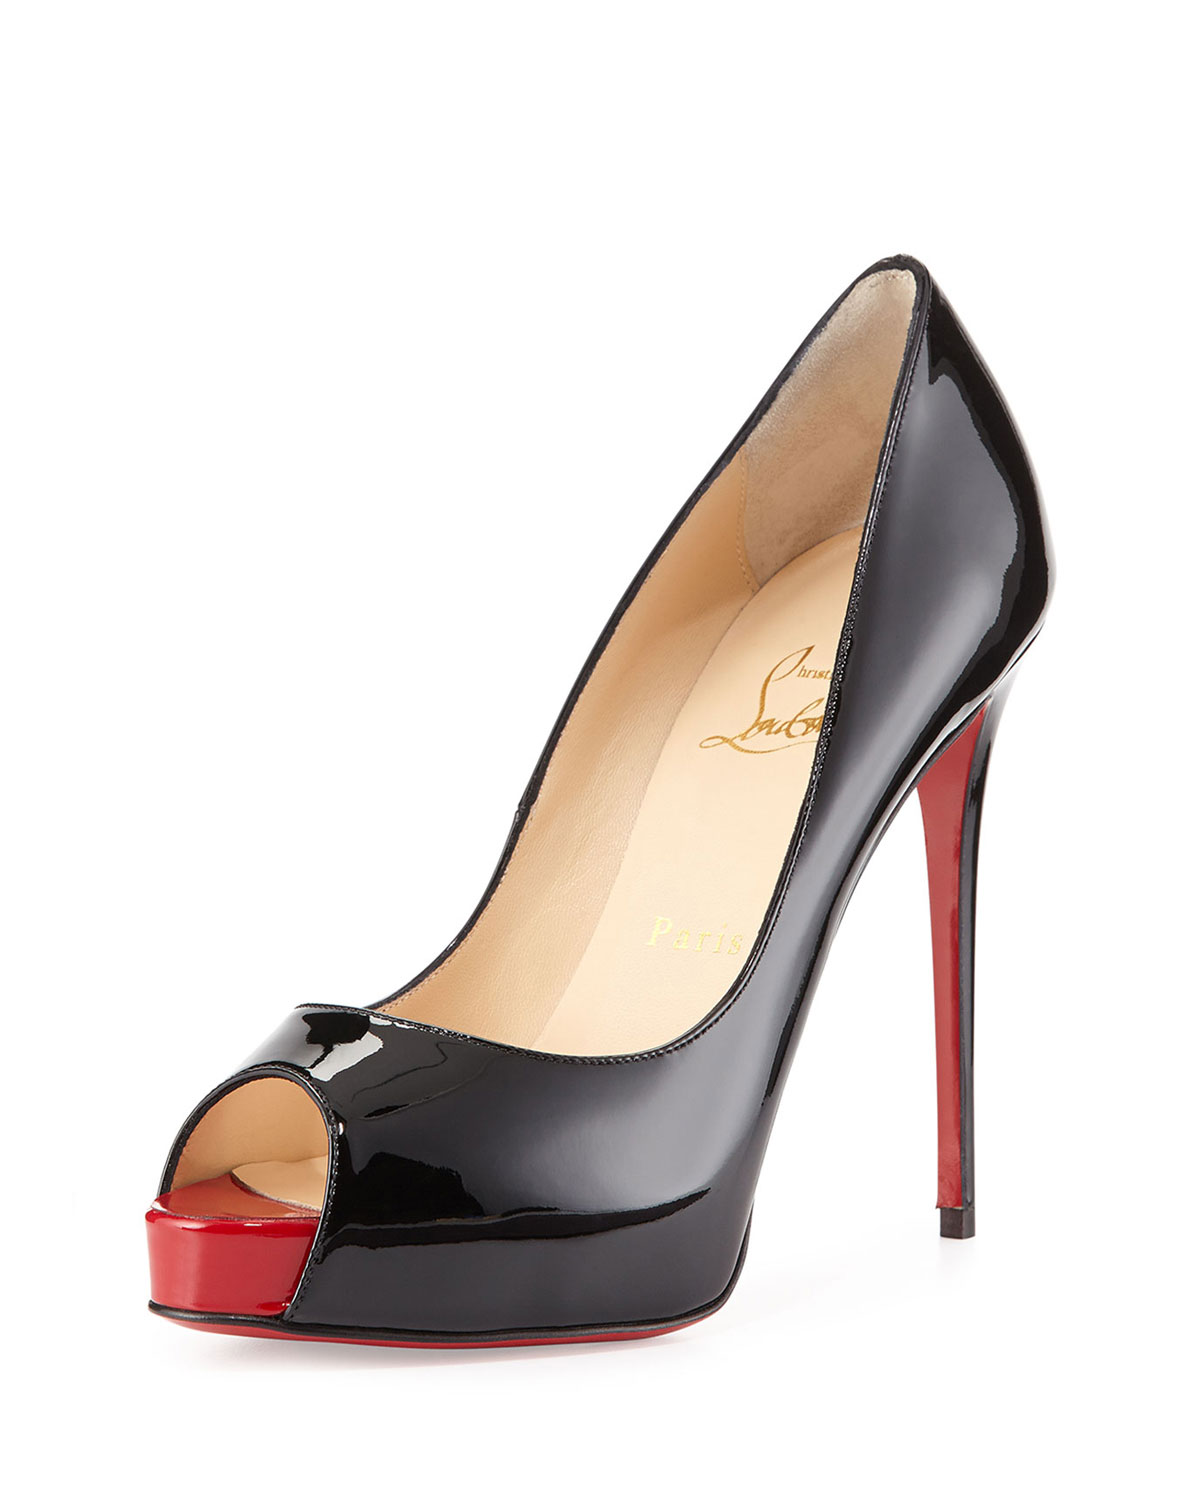 Very Prive Patent Red Sole Pump